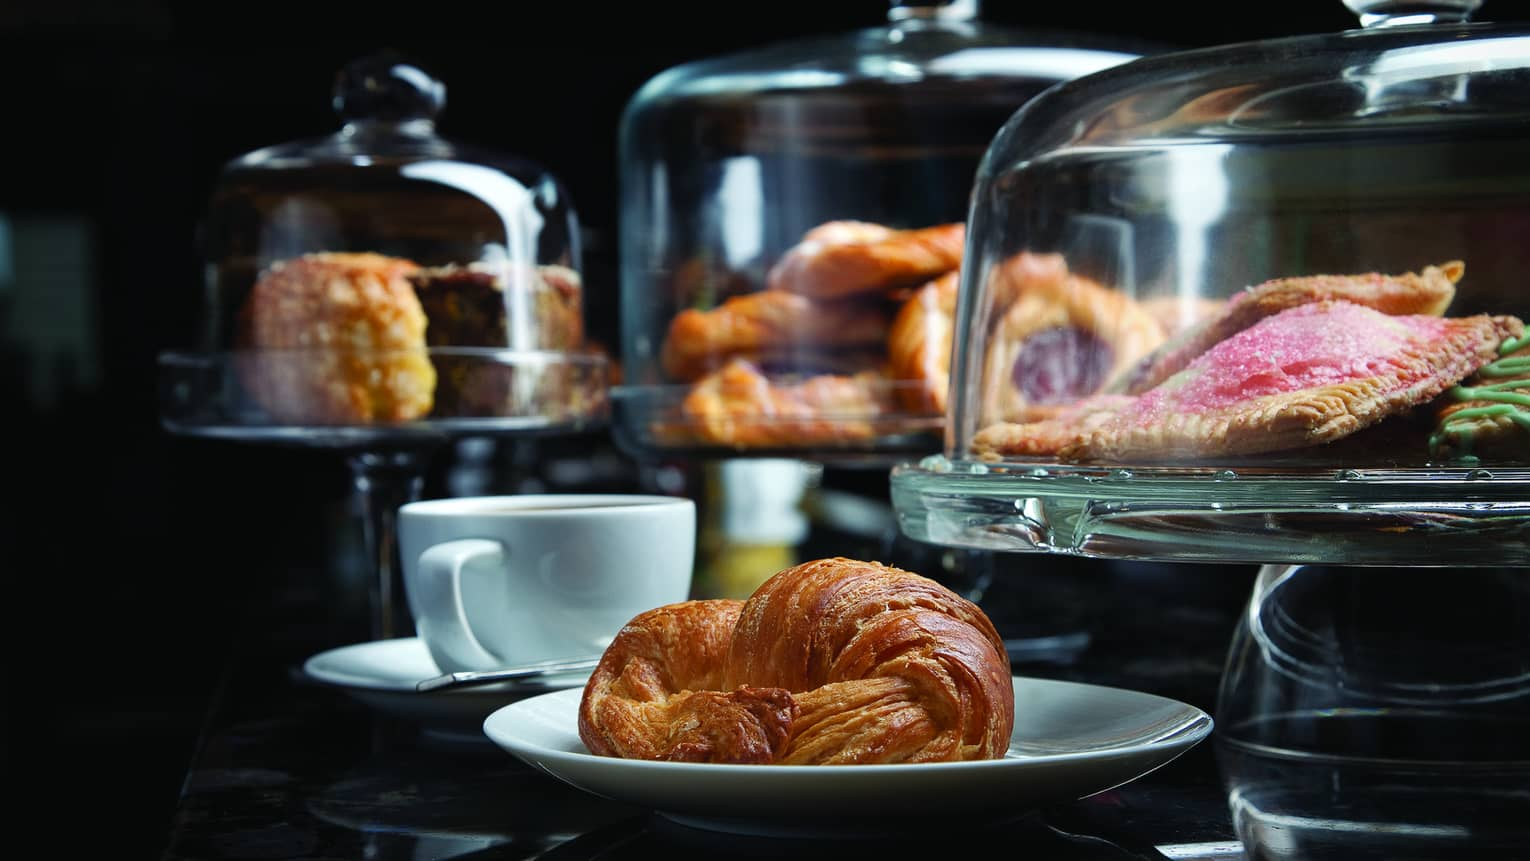 Croissant on plate by small coffee cup, breakfast pastries in glass displays